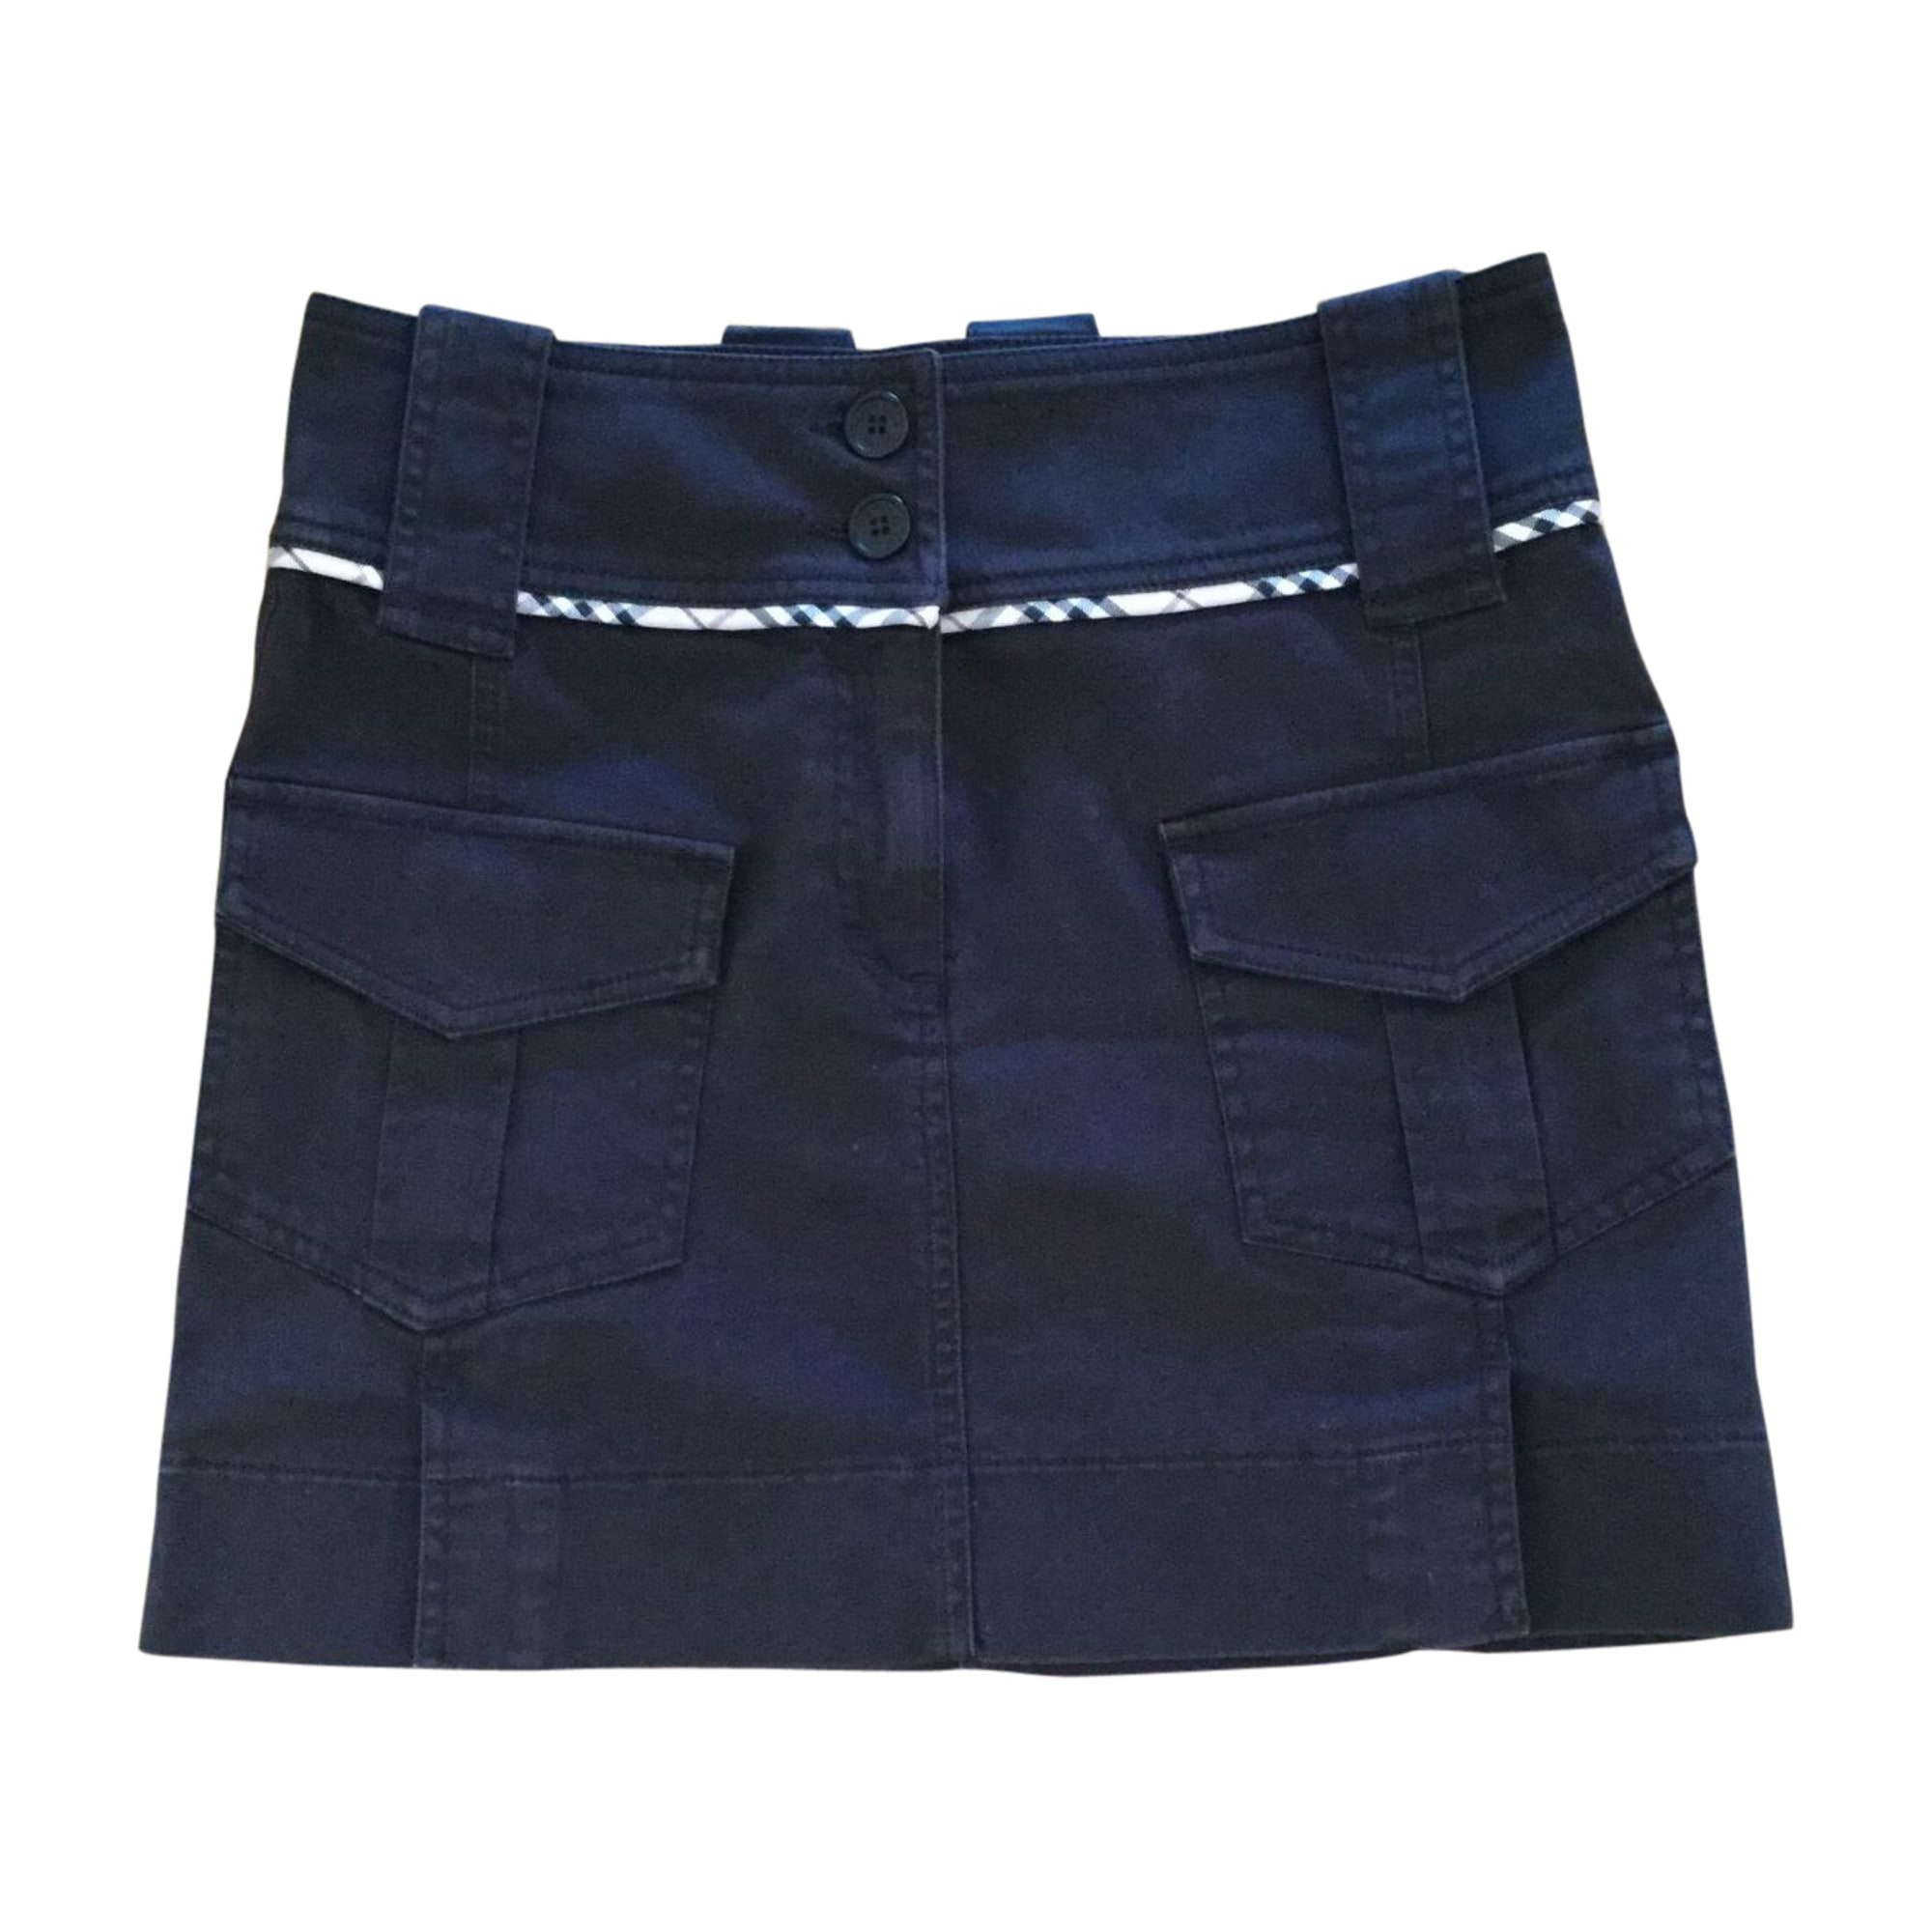 Mini Skirt BURBERRY Black